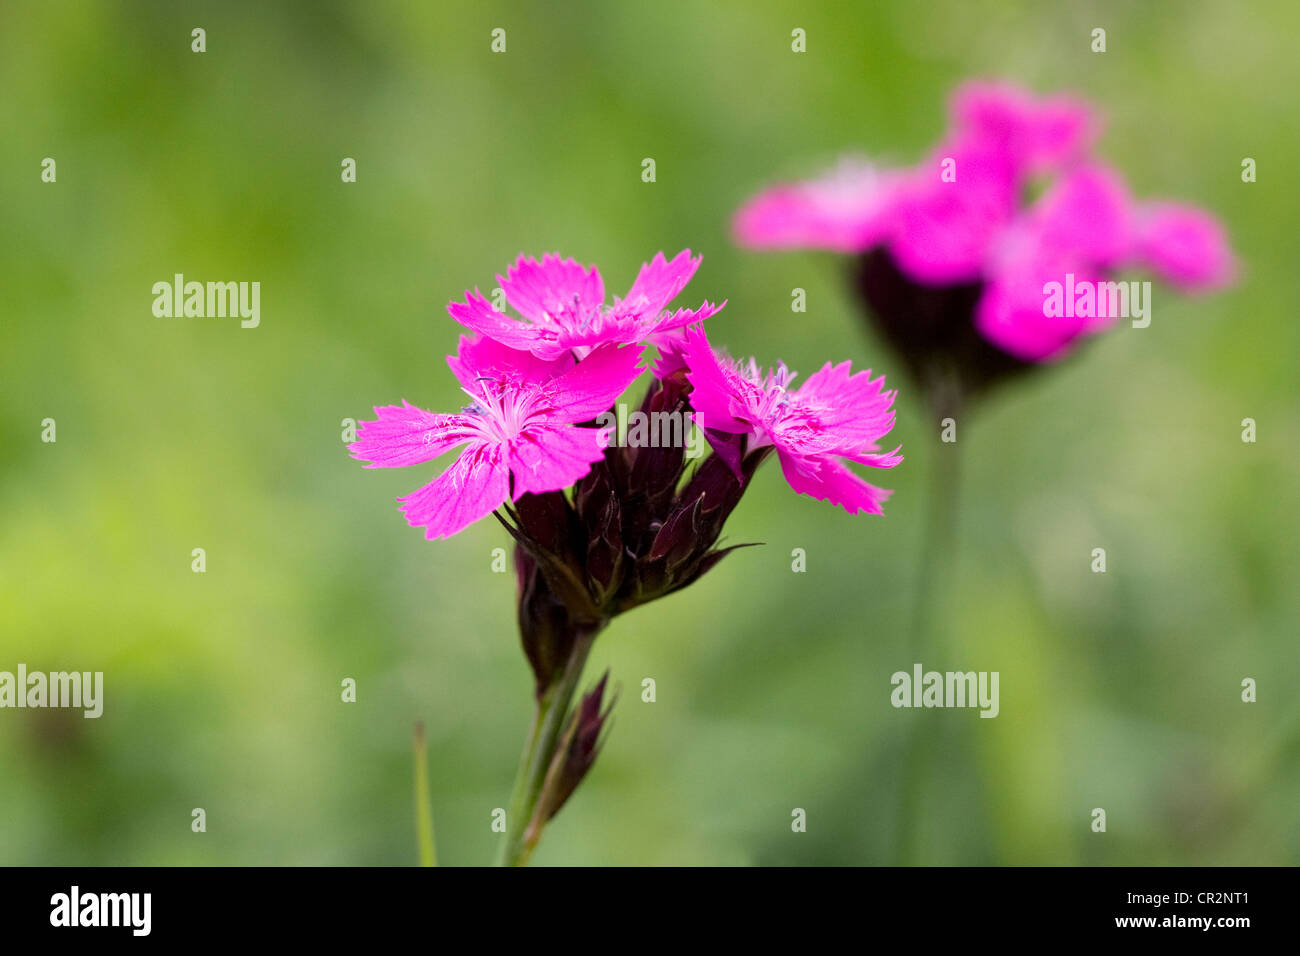 Dianthus carthusianorum growing in a wild flower meadow. Stock Photo